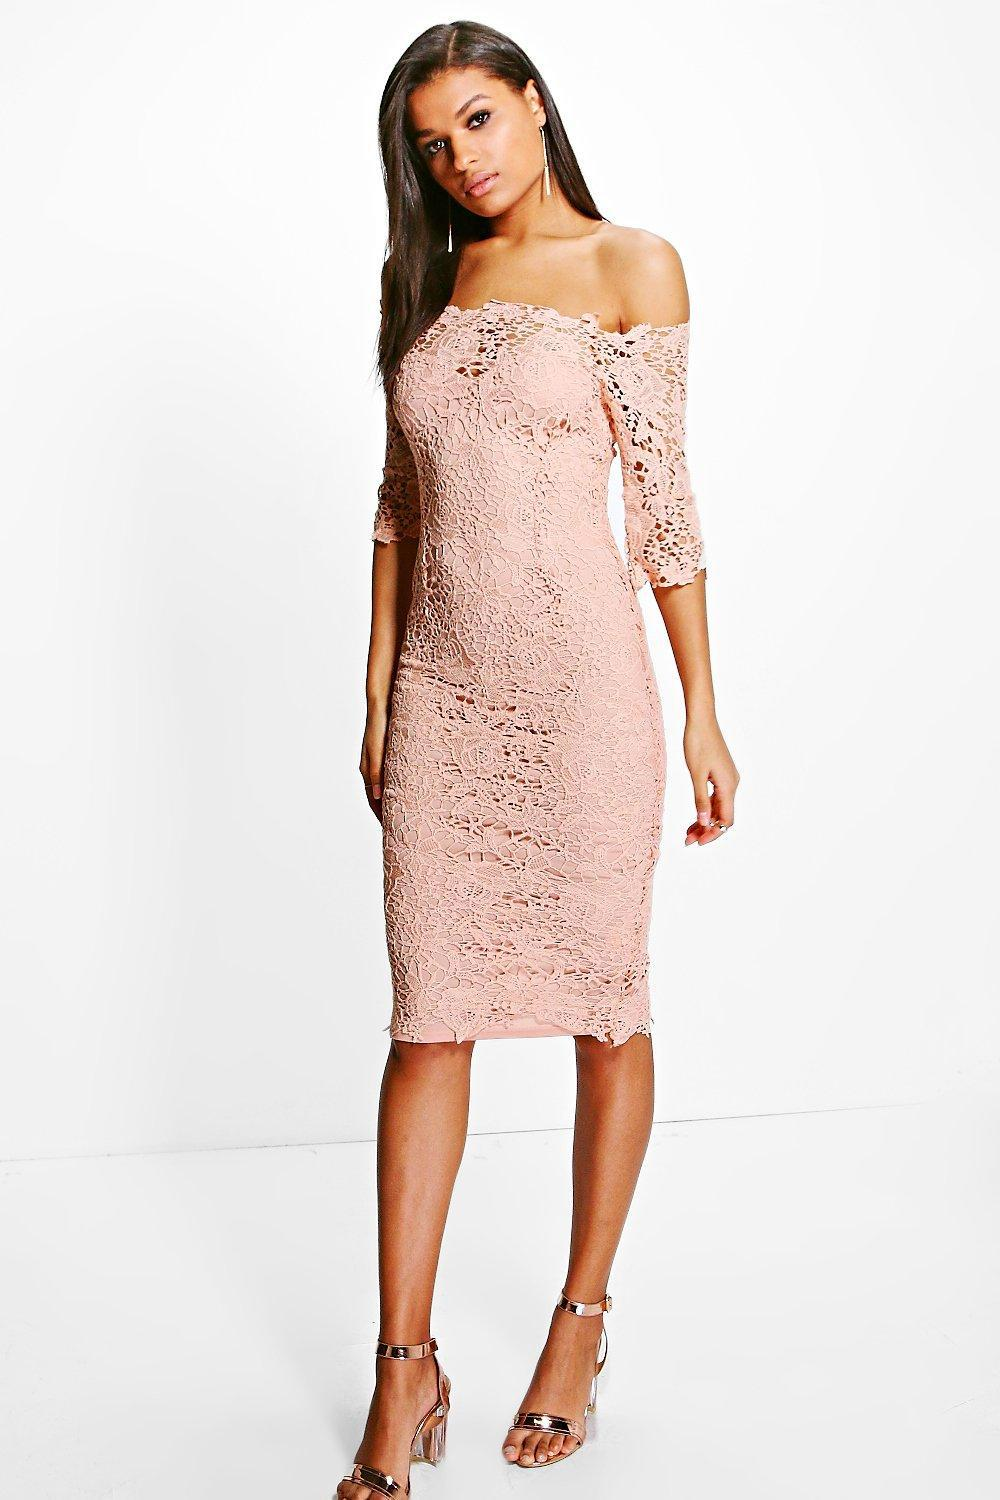 c9c8baccd922 Lyst - Boohoo Boutique Crochet Off Shoulder Midi Dress in Pink